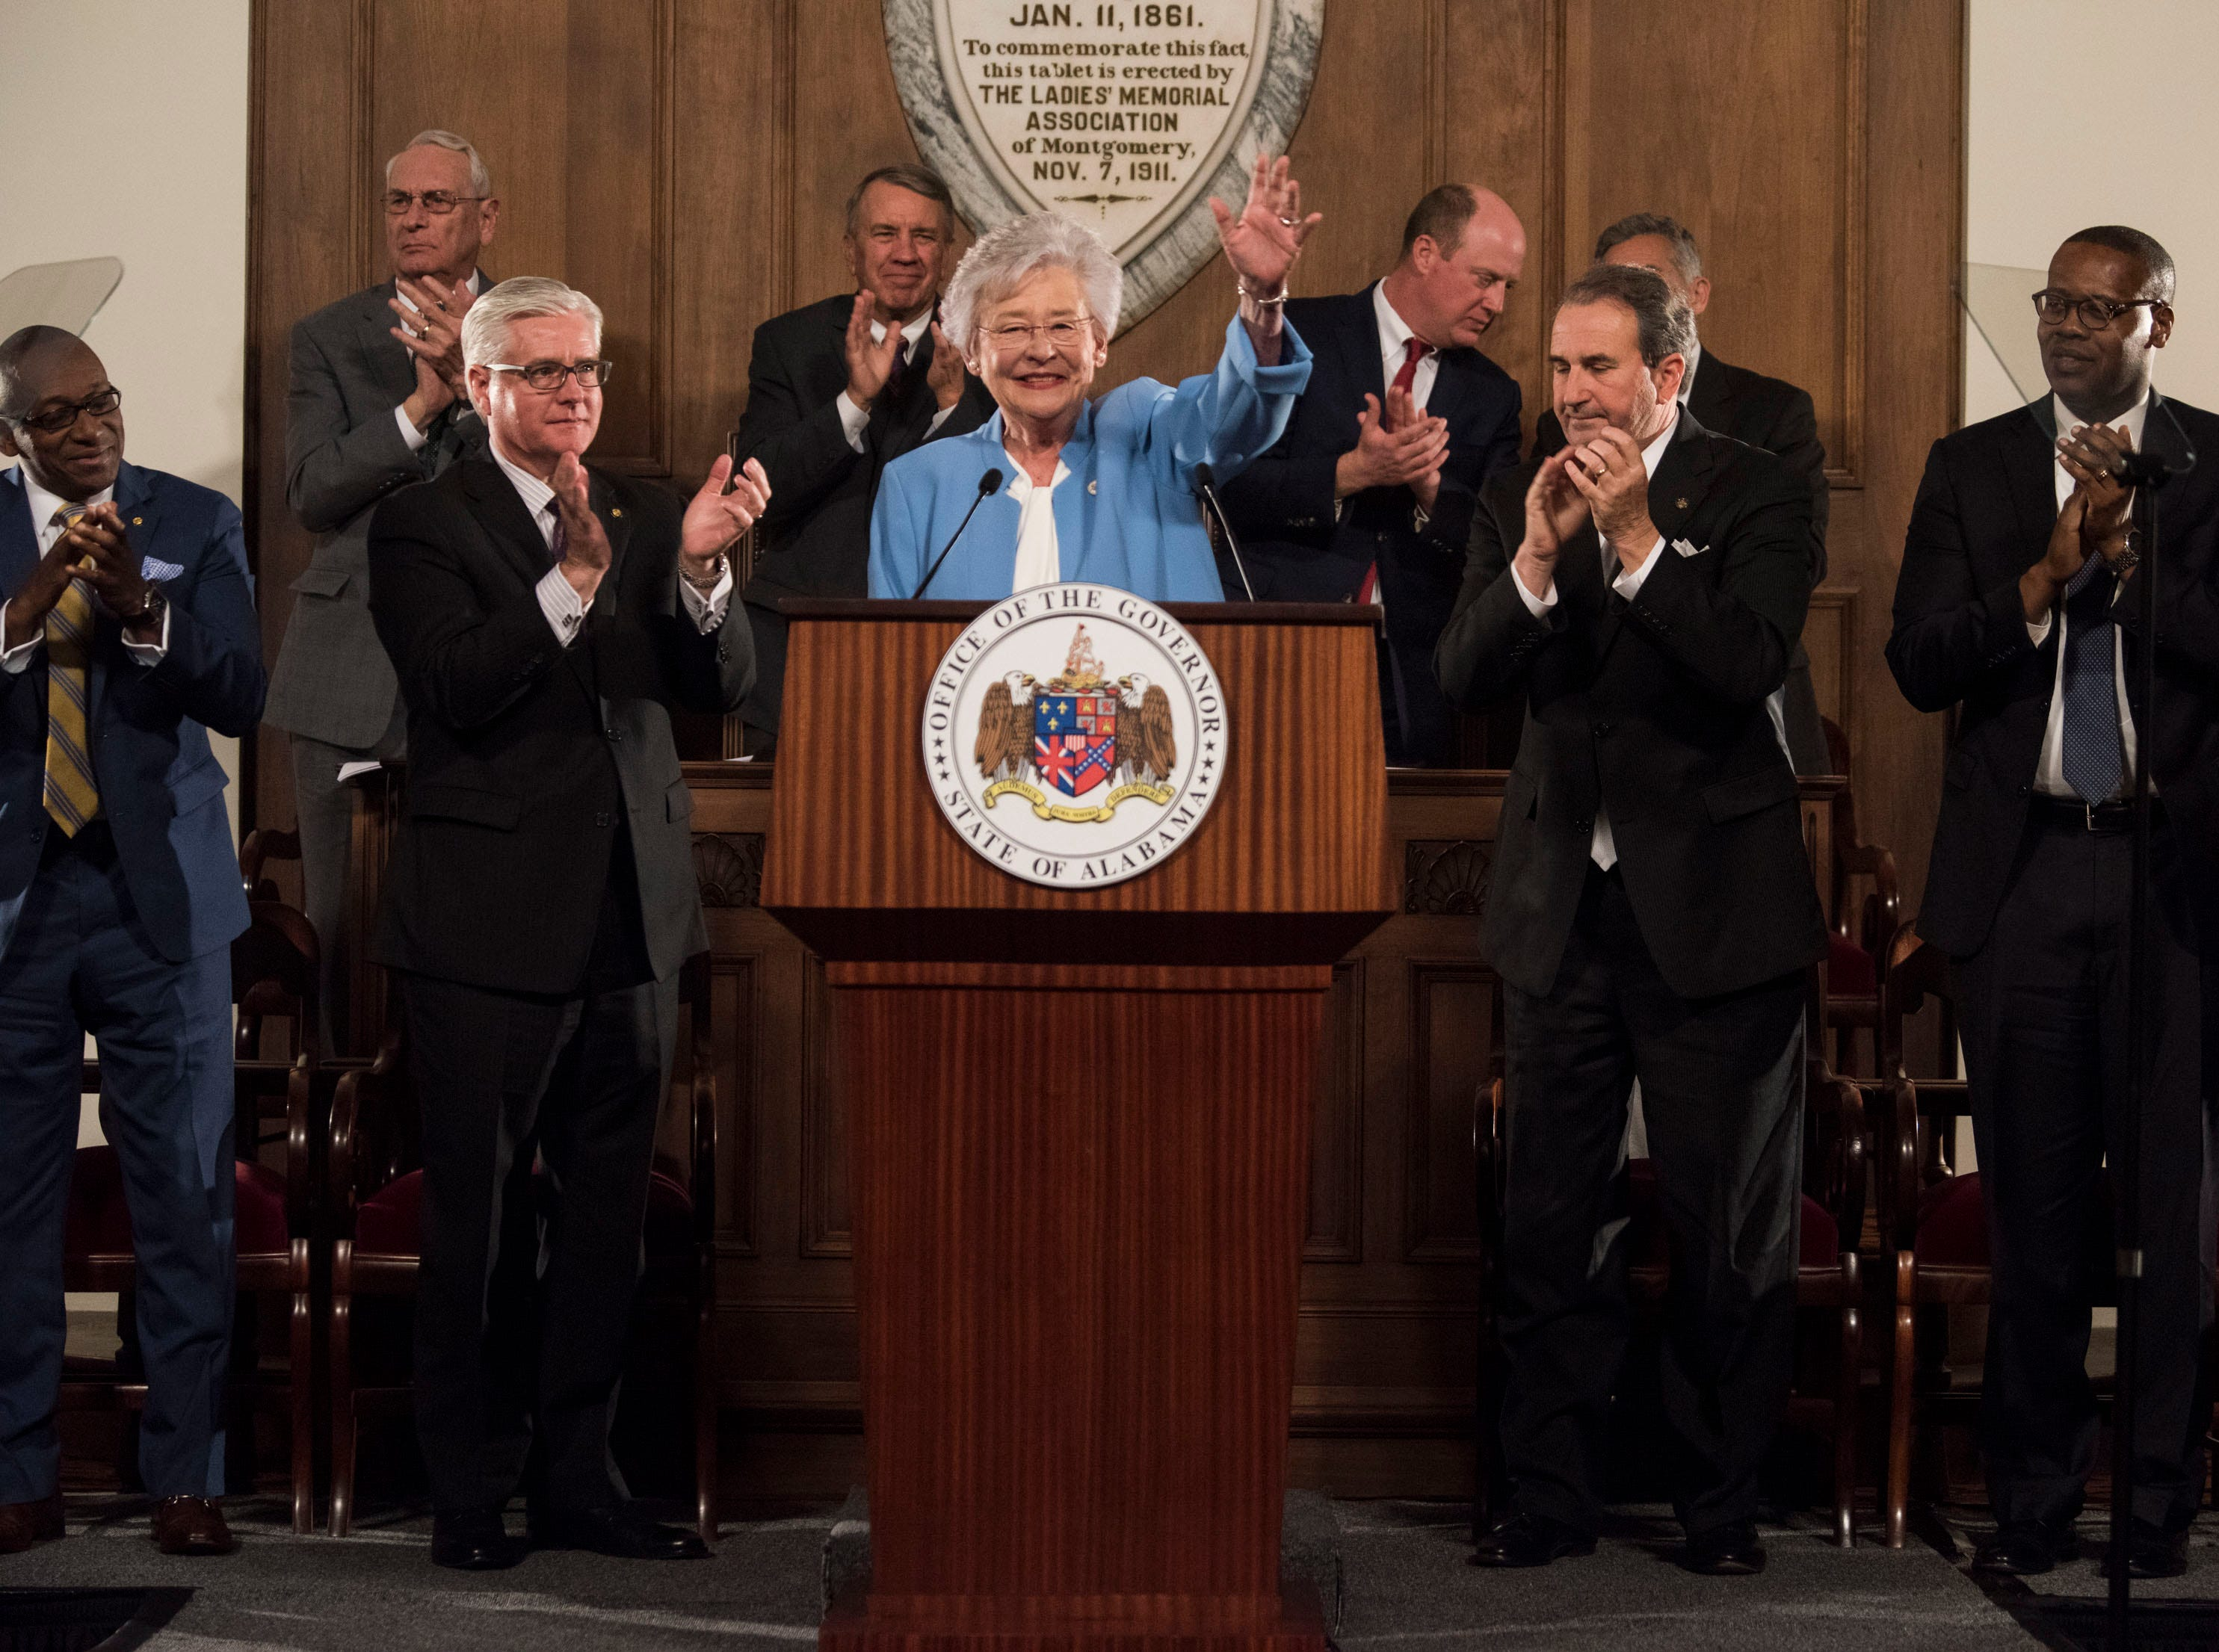 Gov. Kay Ivey delivers the State of the State address inside the old house chambers at the Alabama State Capitol in Montgomery, Ala., on Tuesday, March 5, 2019.